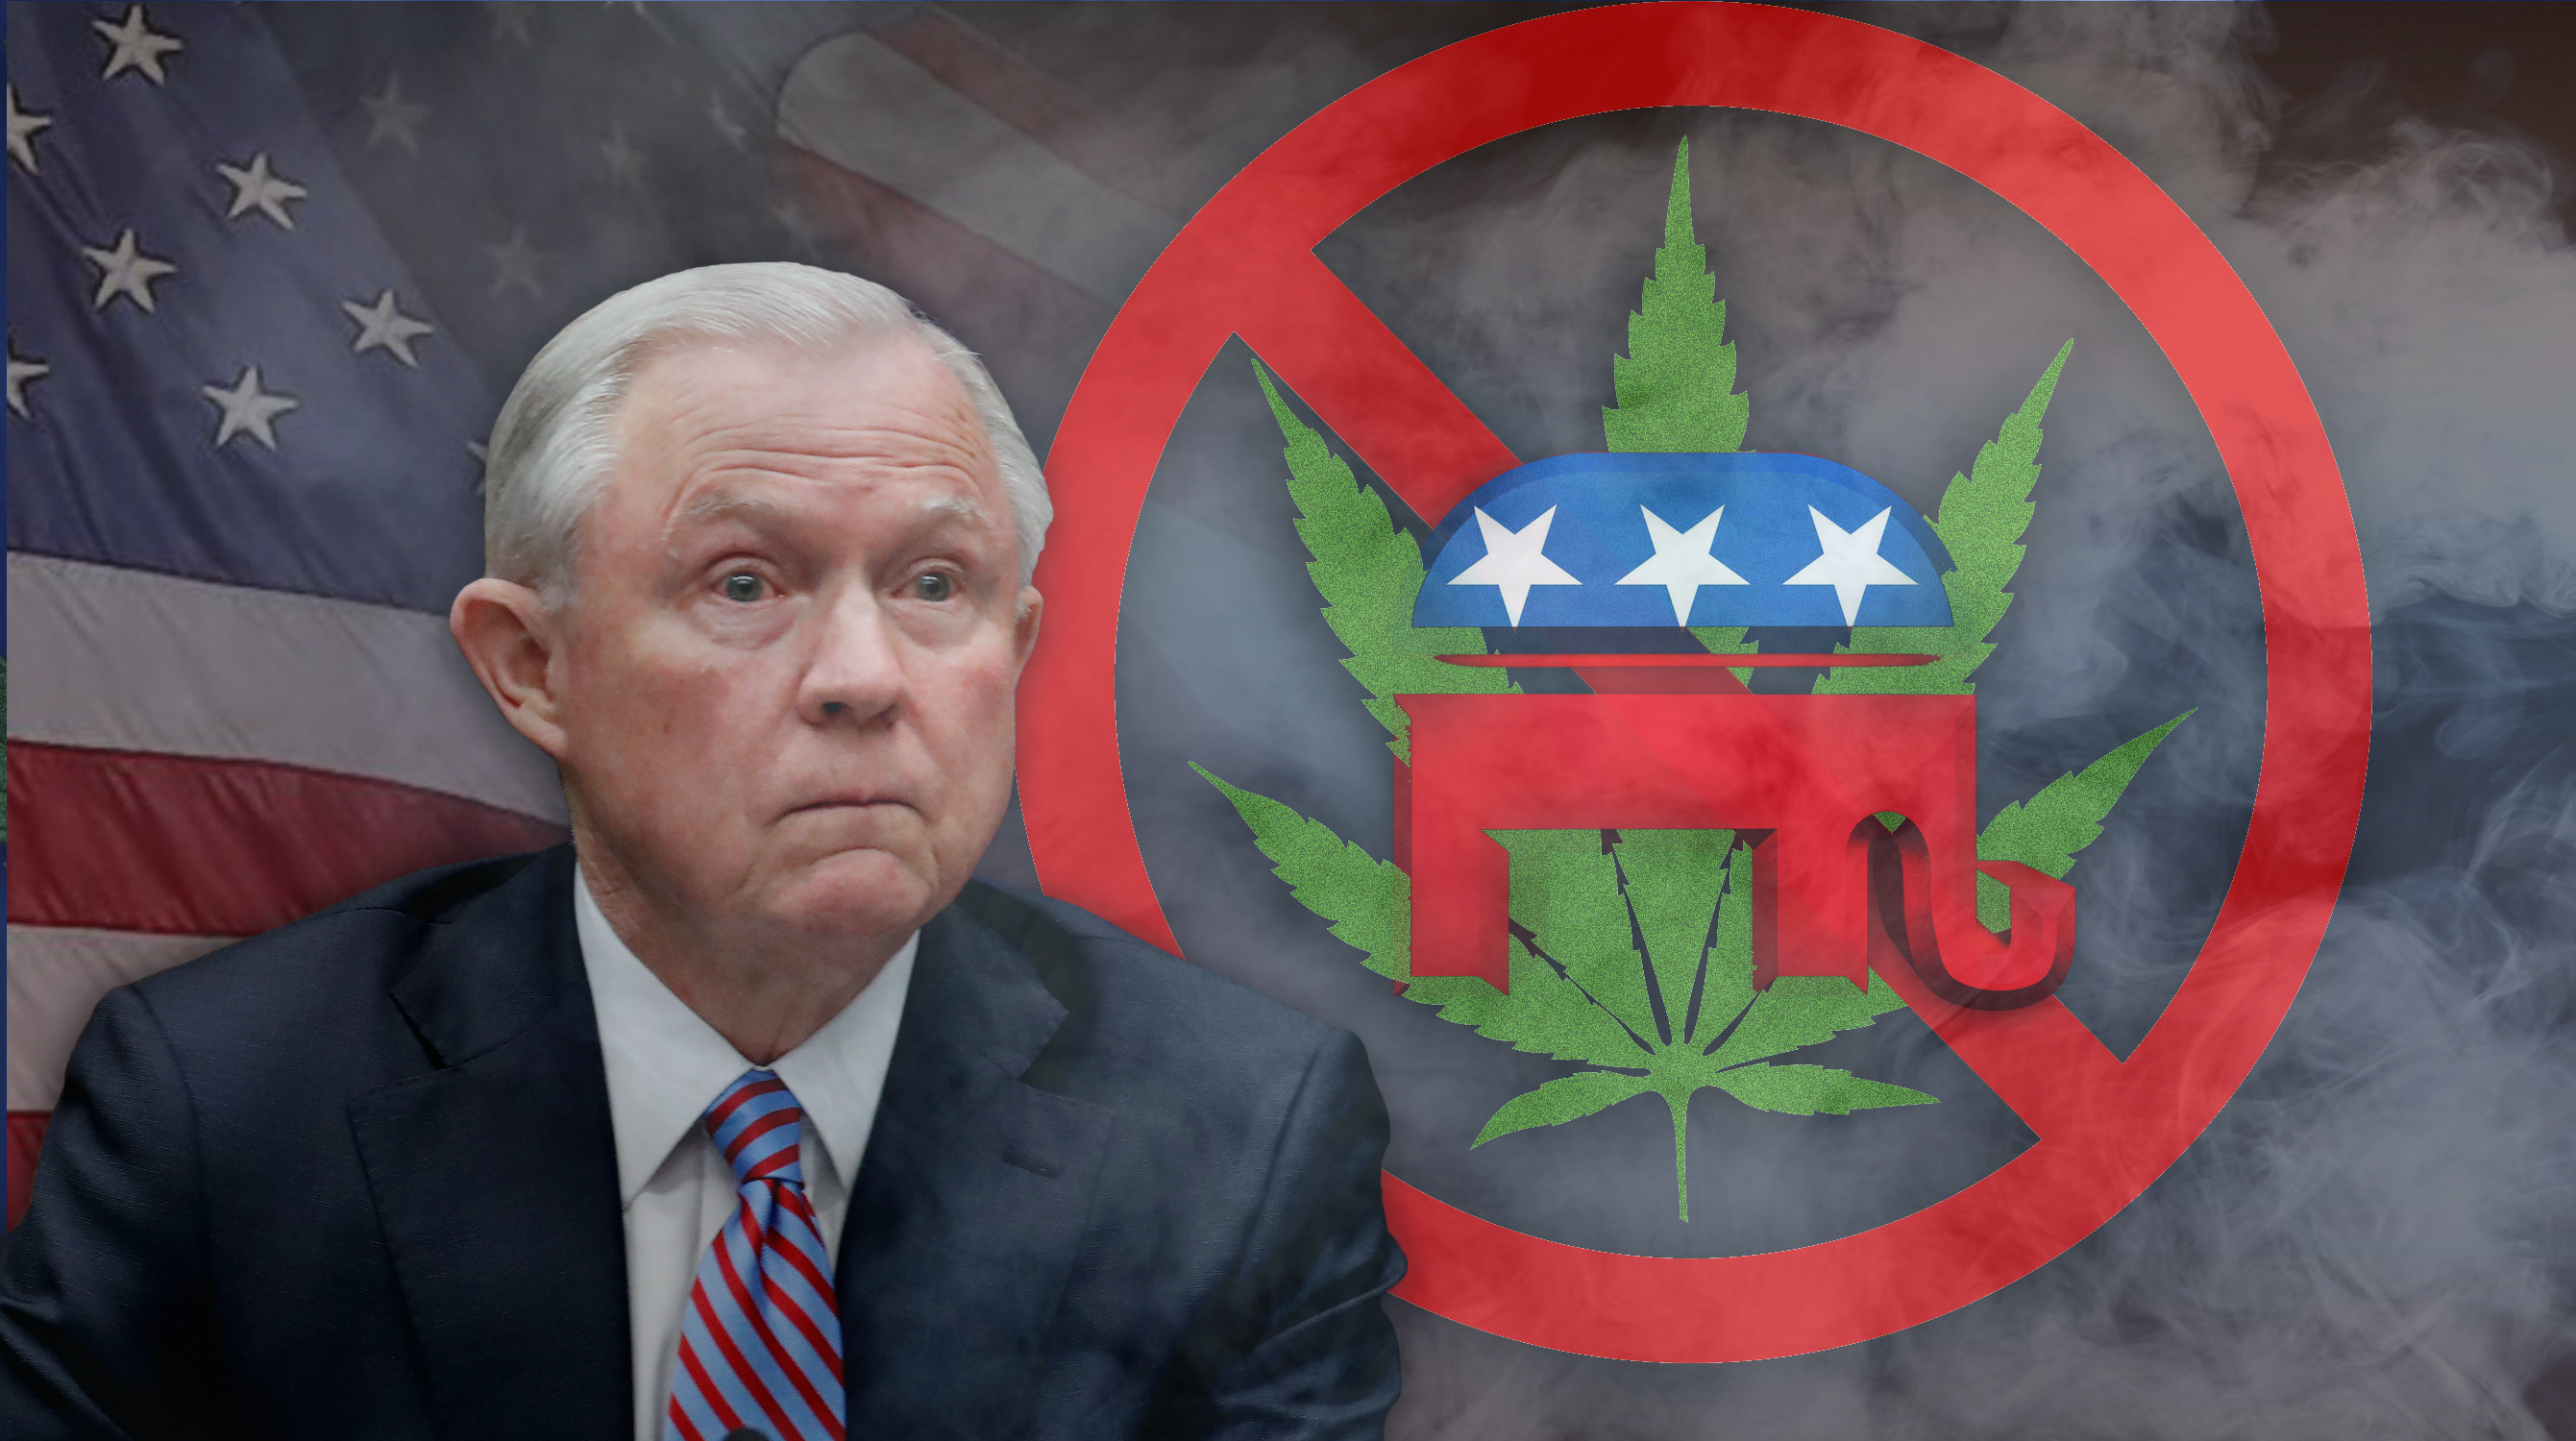 Sessions crackdown on pot could make life harder for Republicans in November